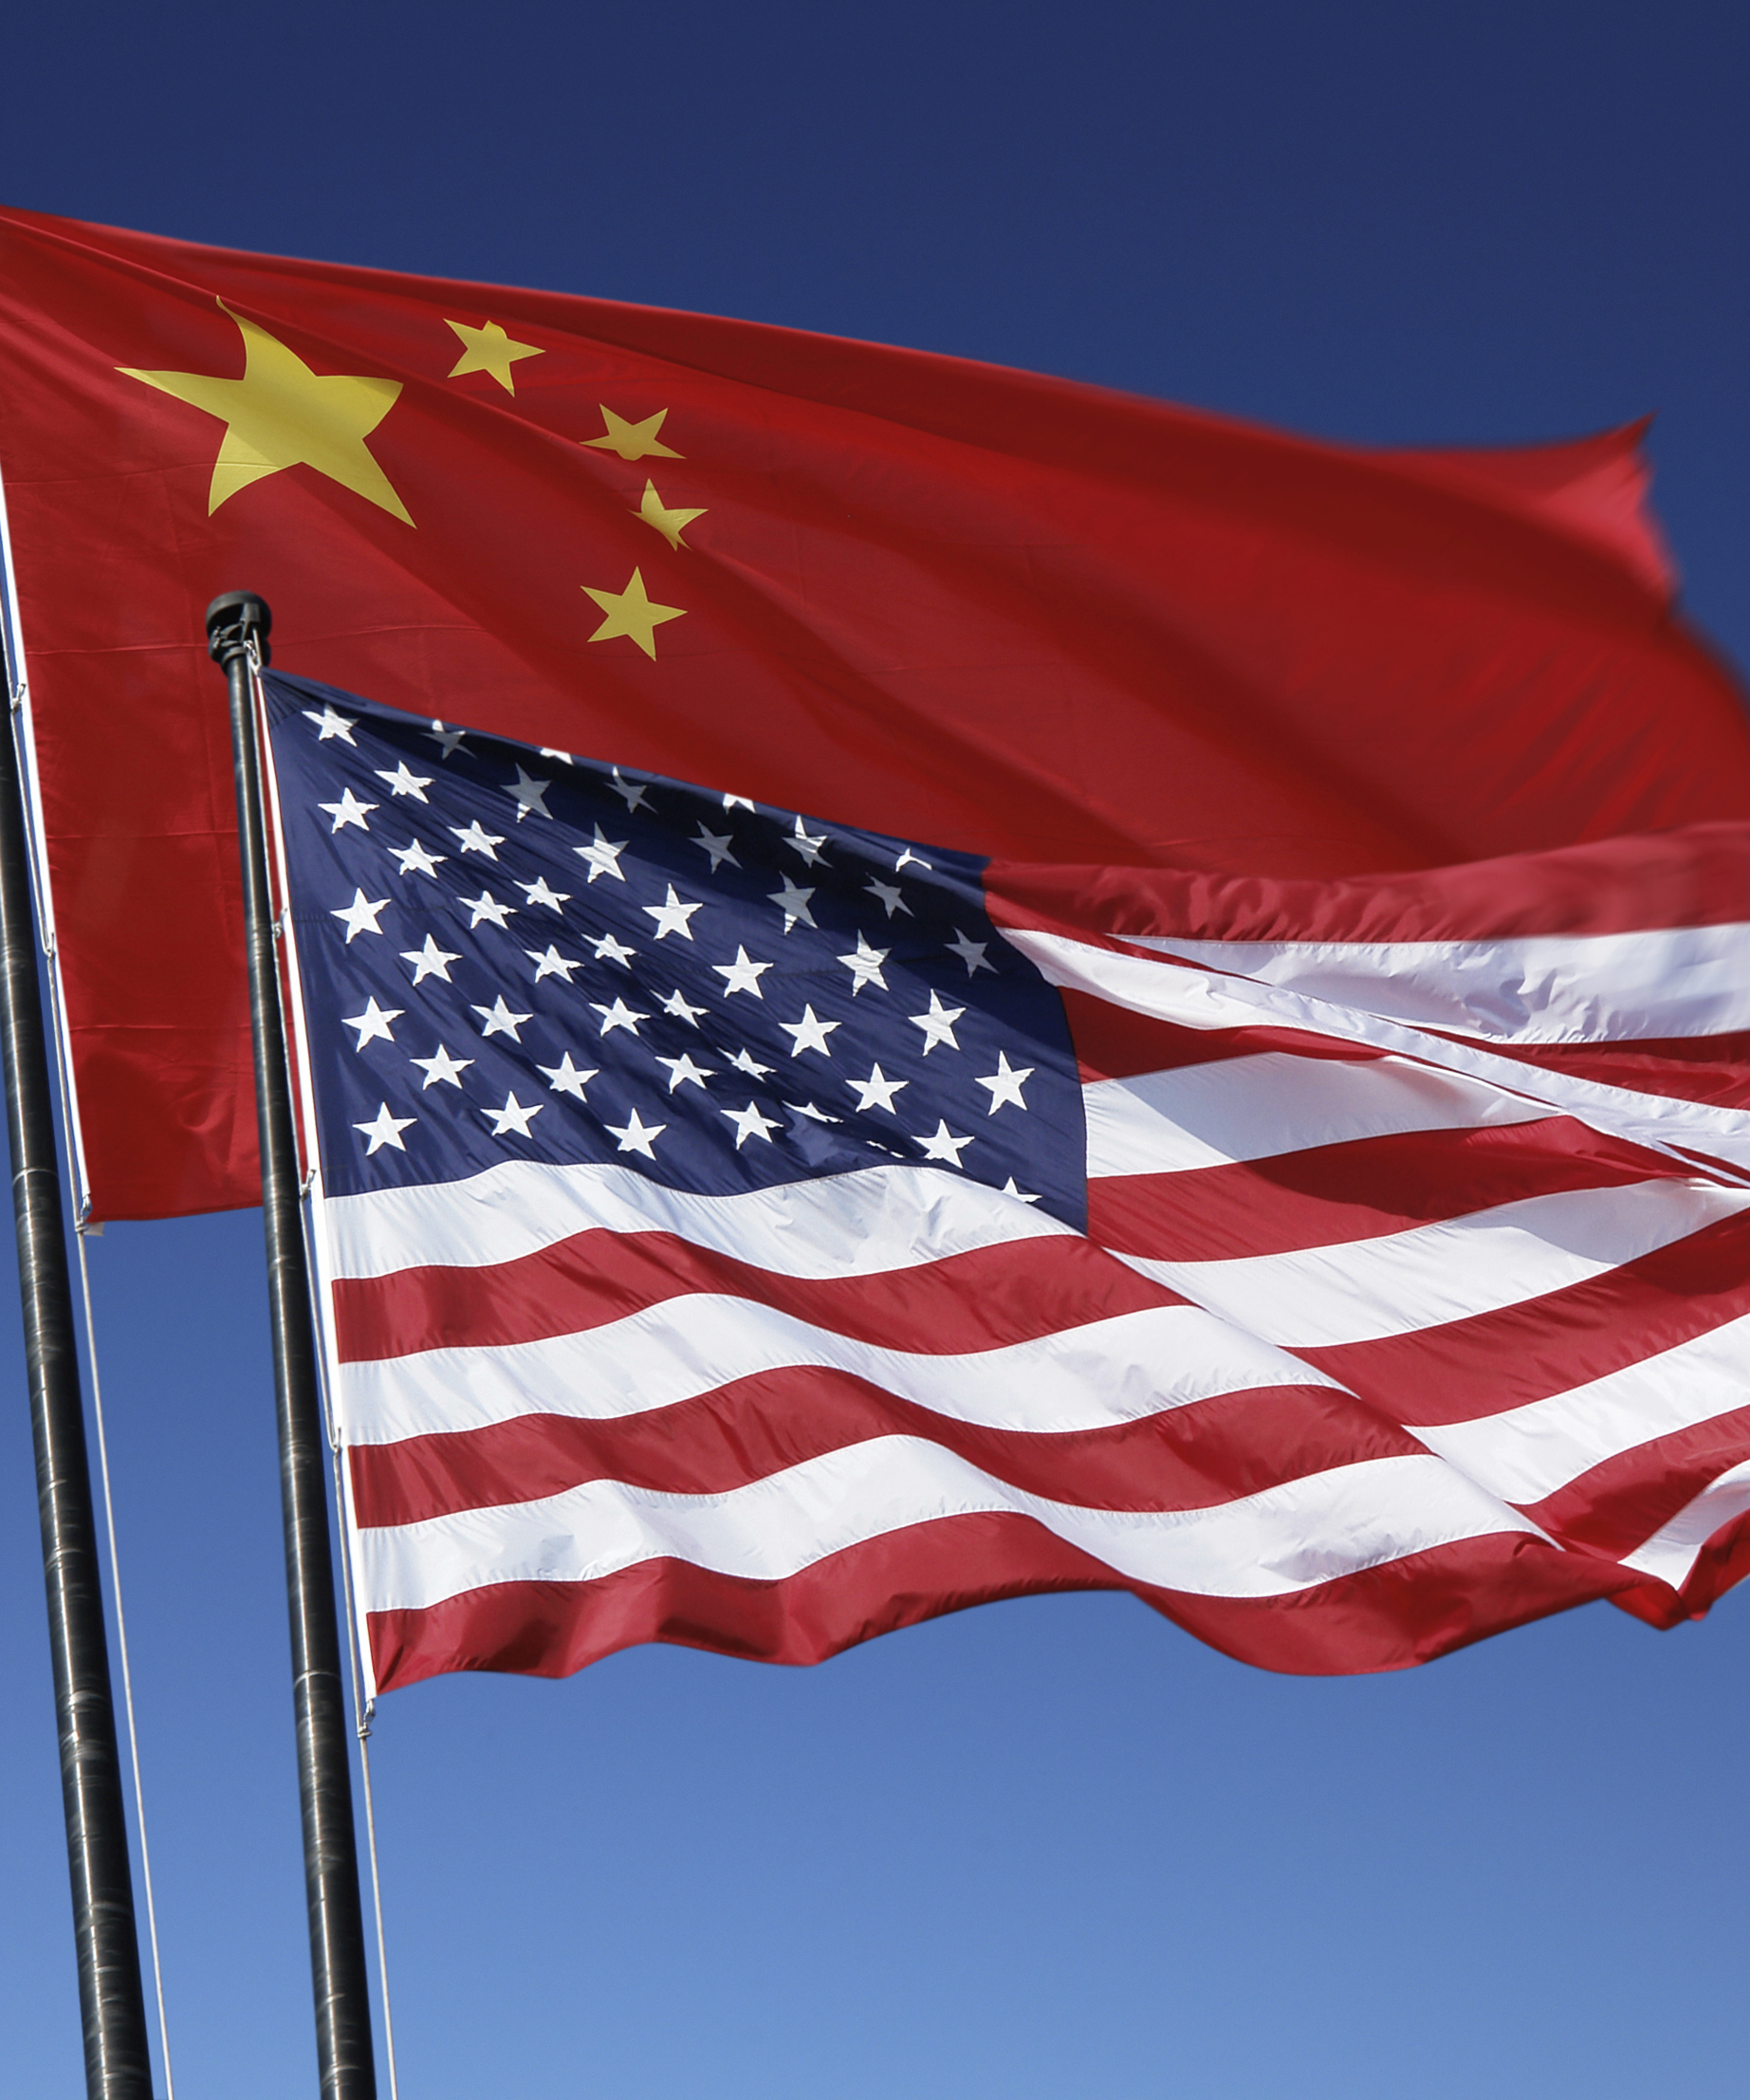 U.S. and Chinese flags